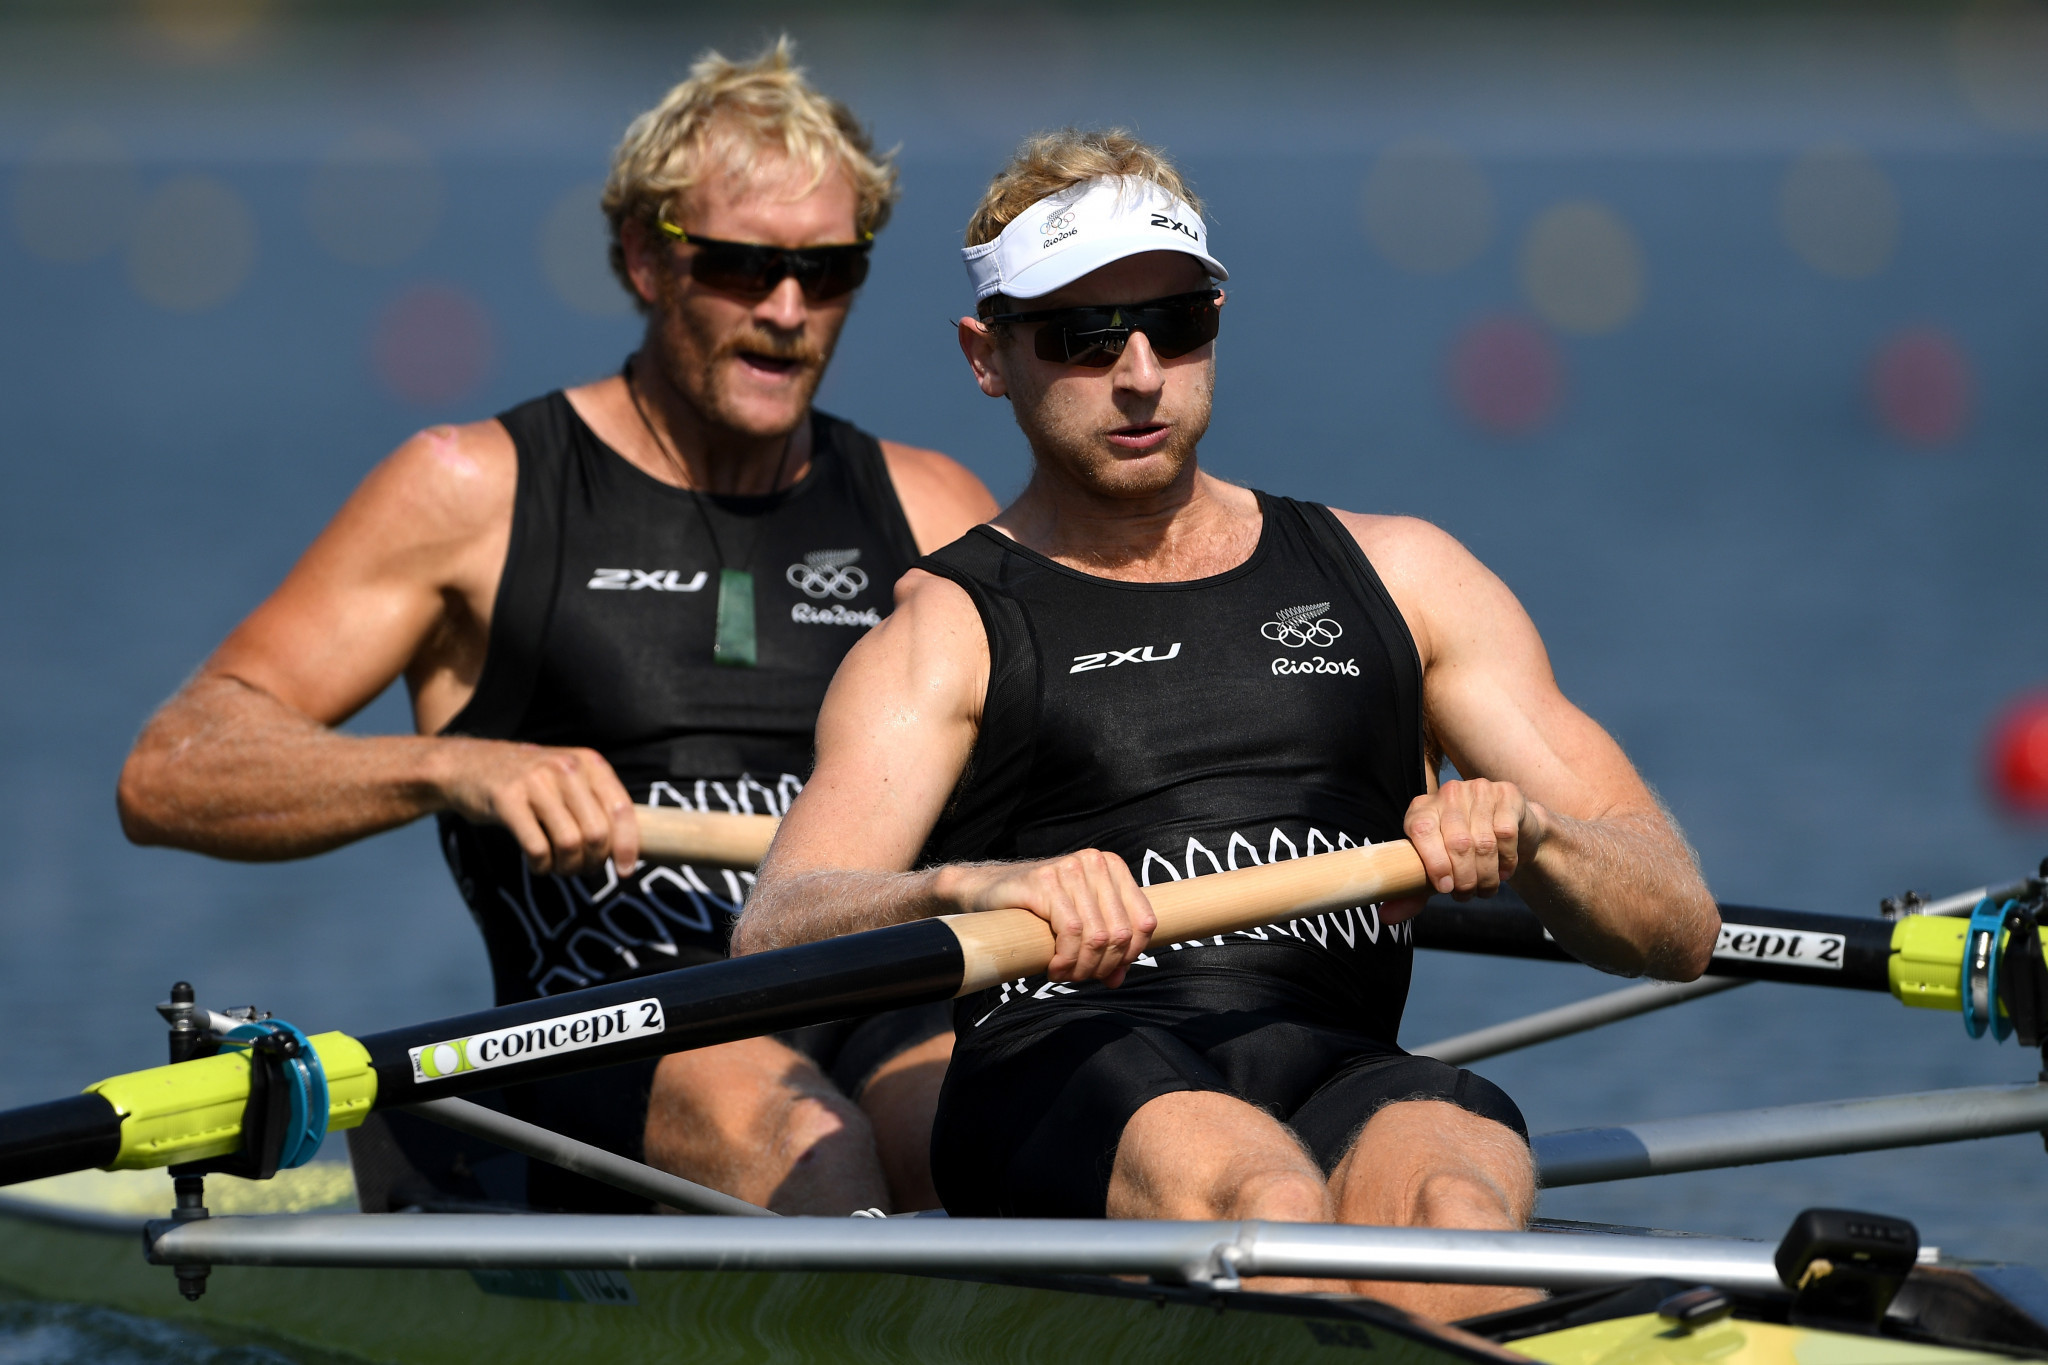 Double Olympic champion Bond switches back to rowing from cycling and aims for Tokyo 2020